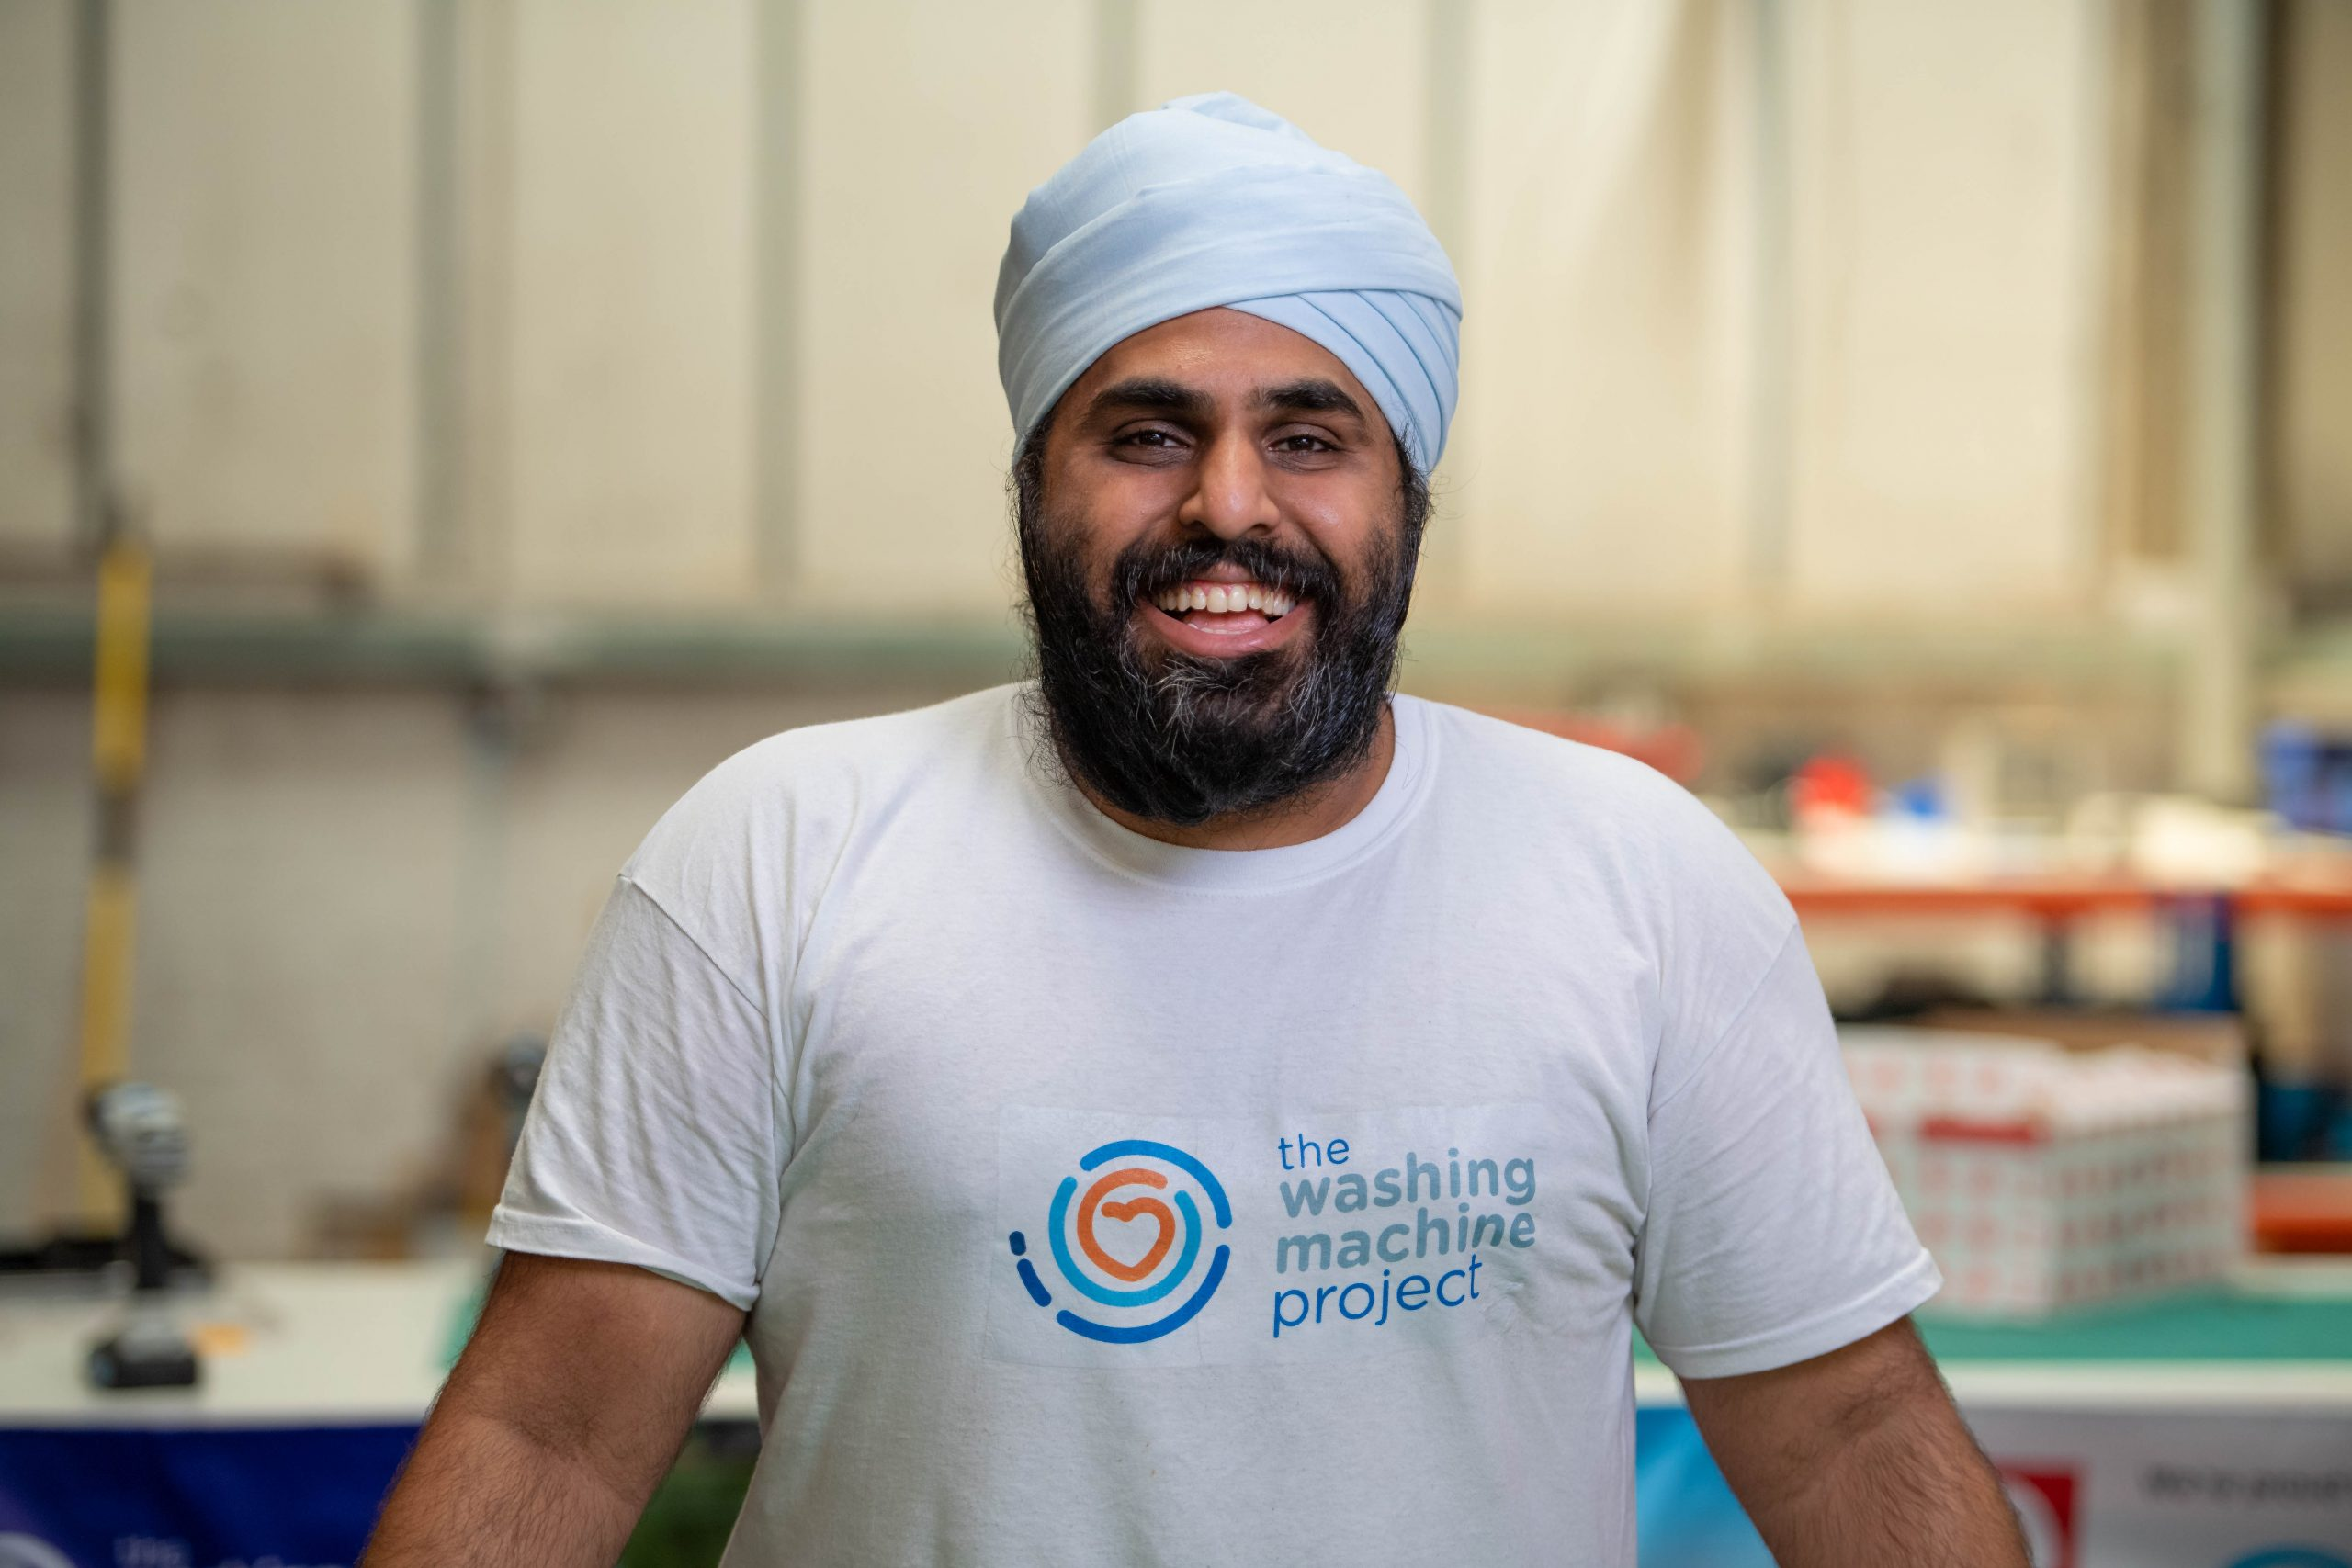 Navjot Sawhney, an engineer from London, created an off-the-grid washing machine for people in refugee camps and poorer regions of the world.